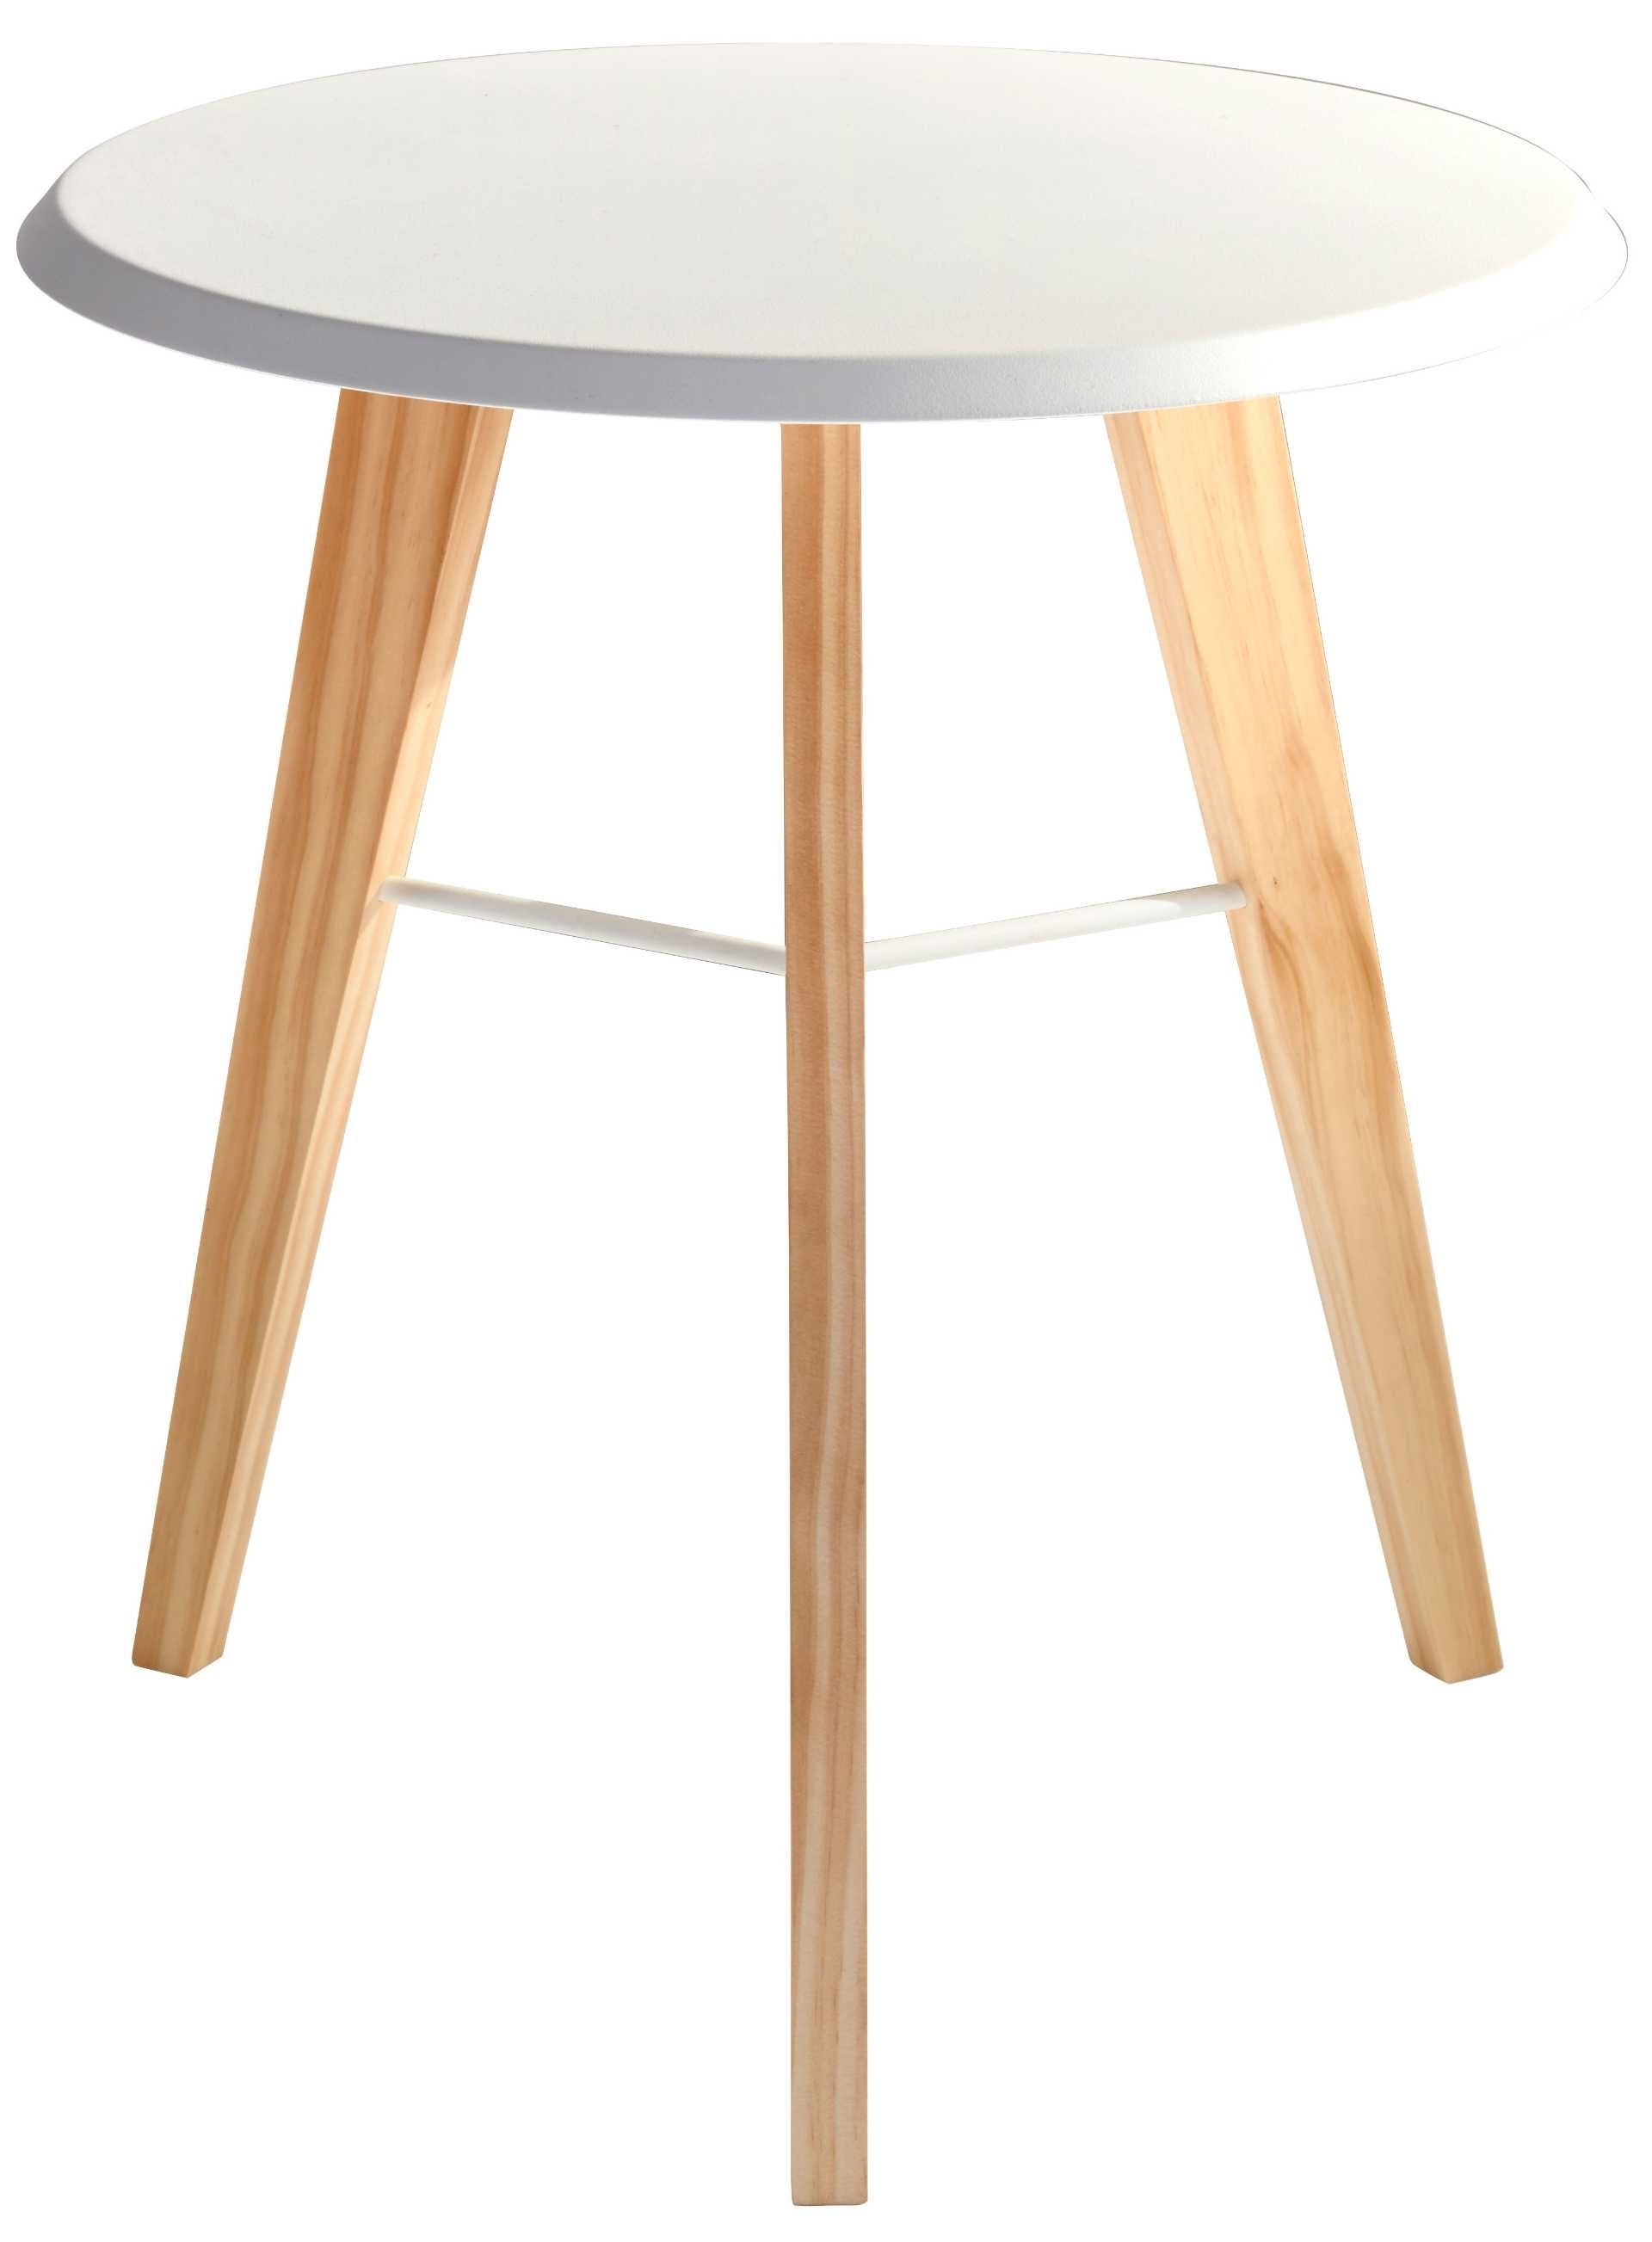 Preferred Jaxon Wood Side Chairs Pertaining To Jaxon Accent Table (white/natural)adesso Furniture (View 20 of 20)